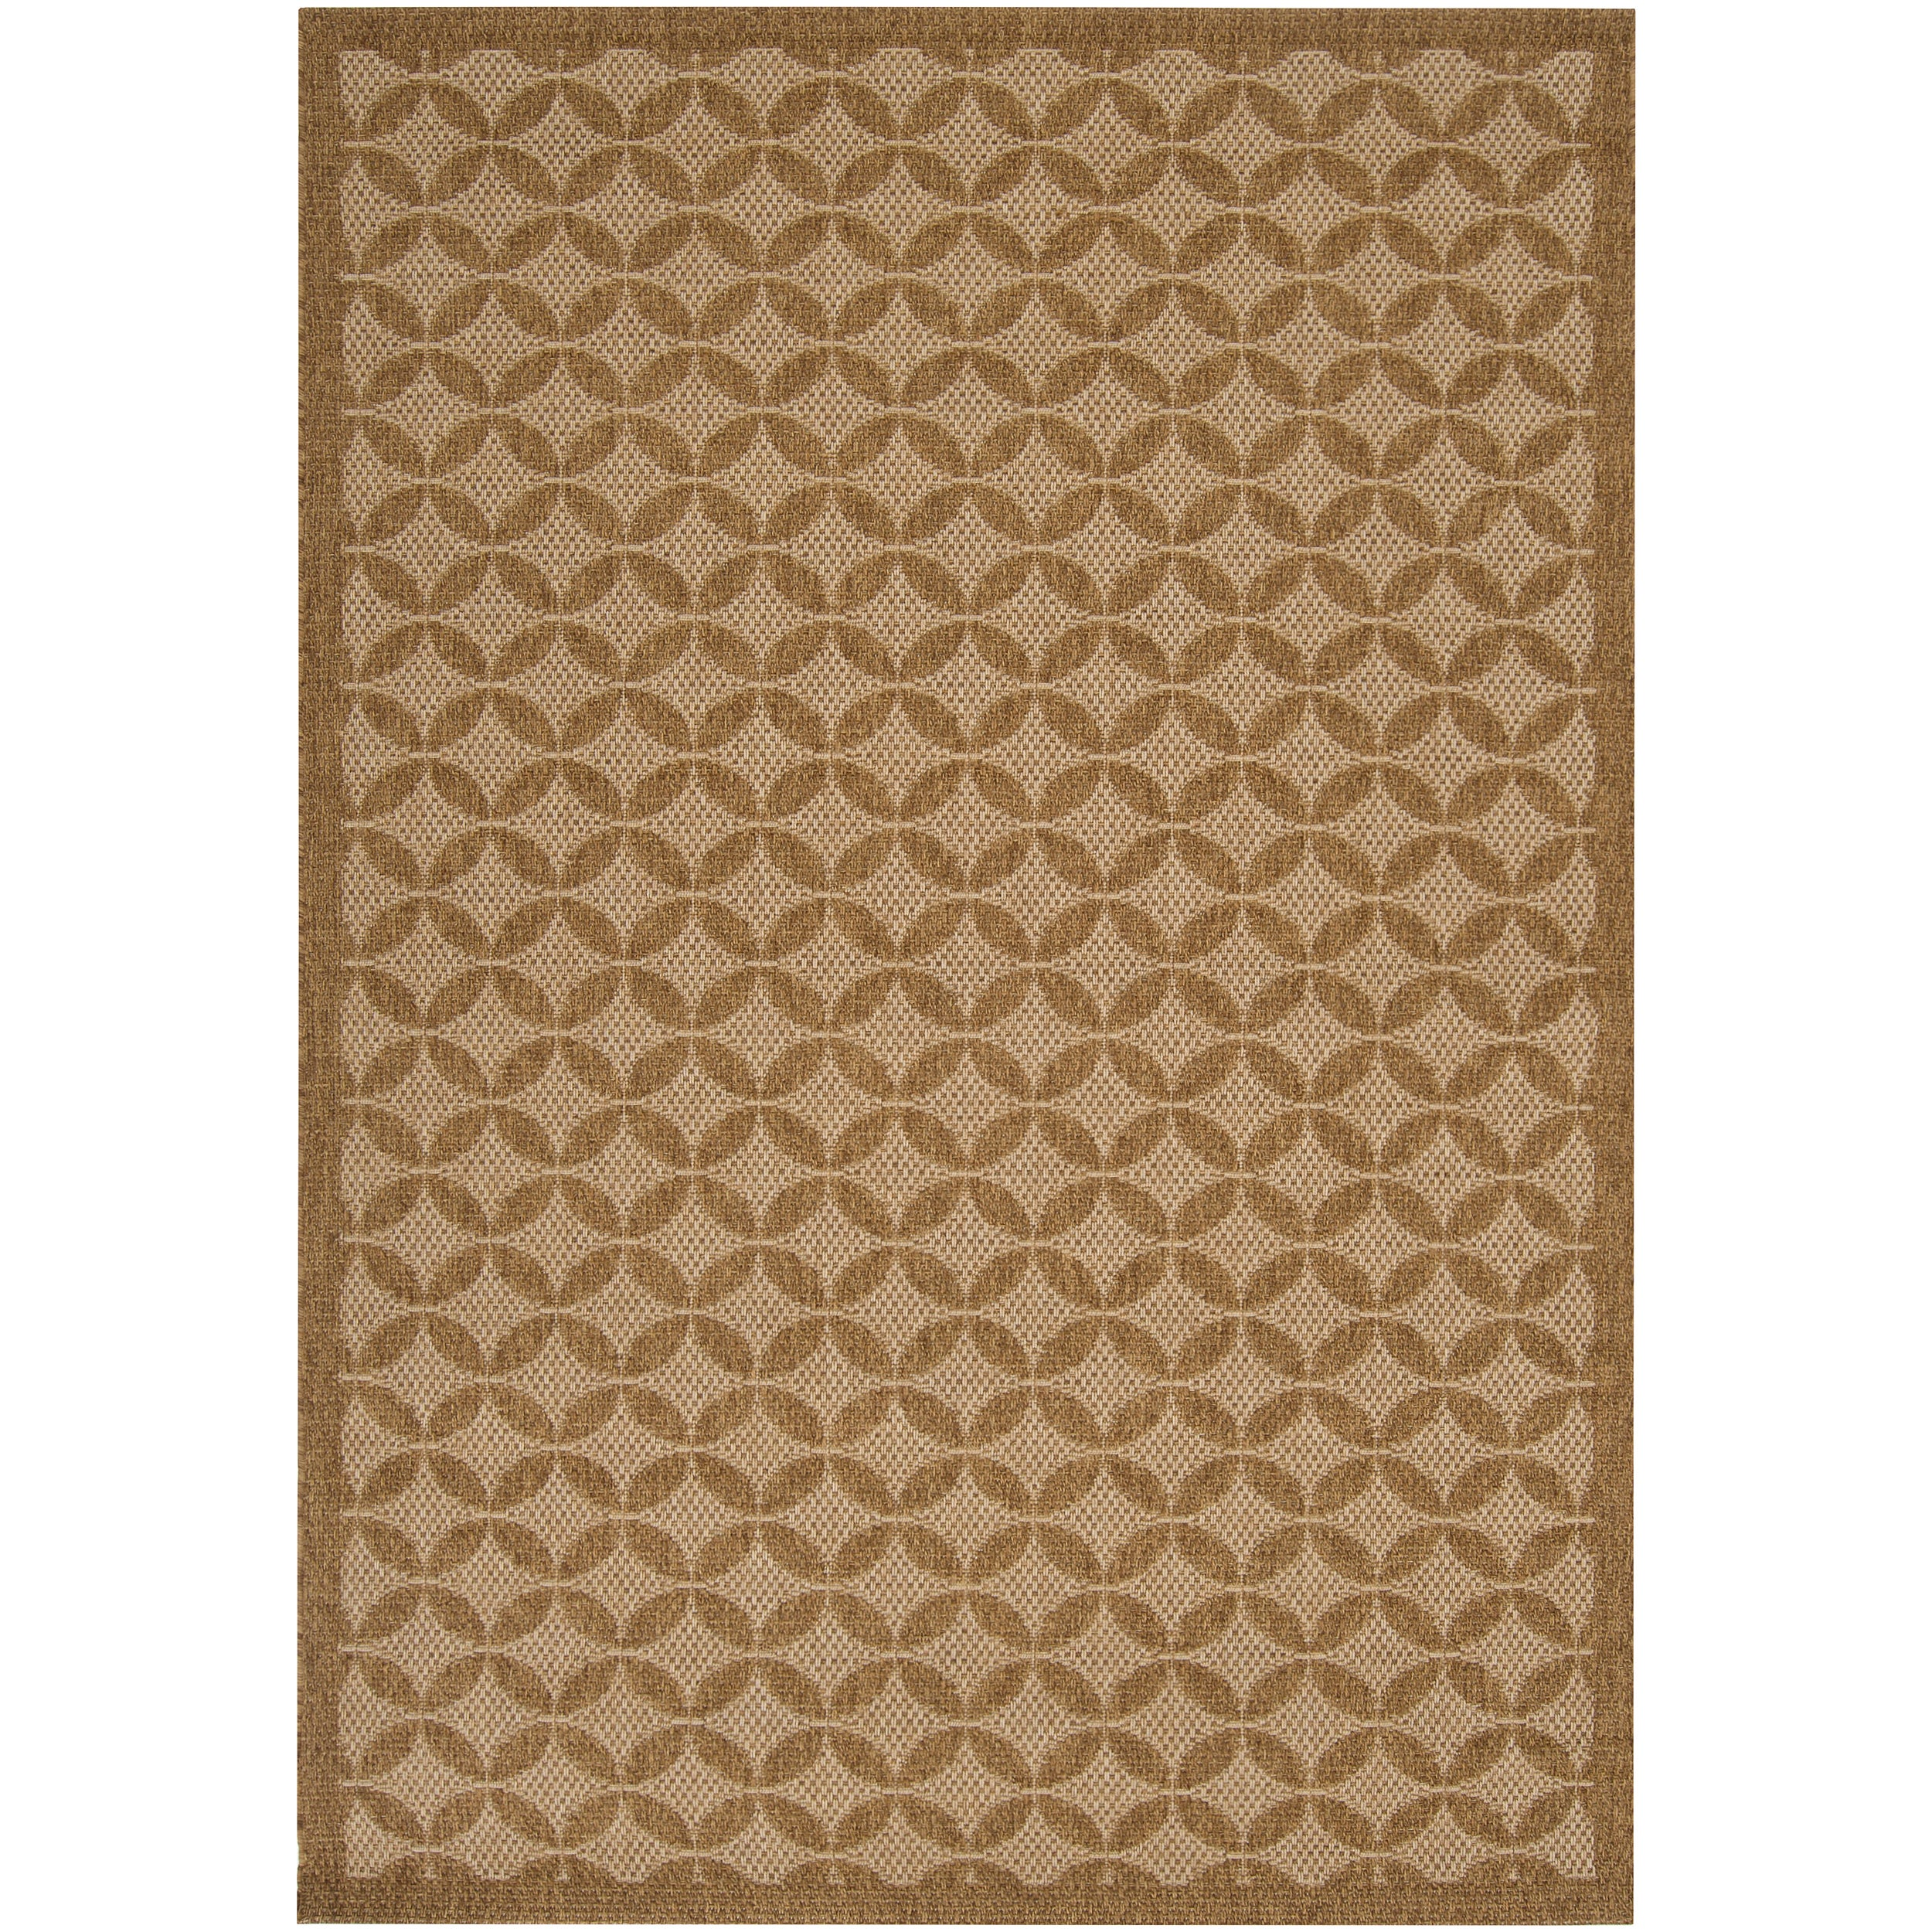 Woven Tan Indoor Outdoor Moroccan Tile Rug 3 11 x 5 7